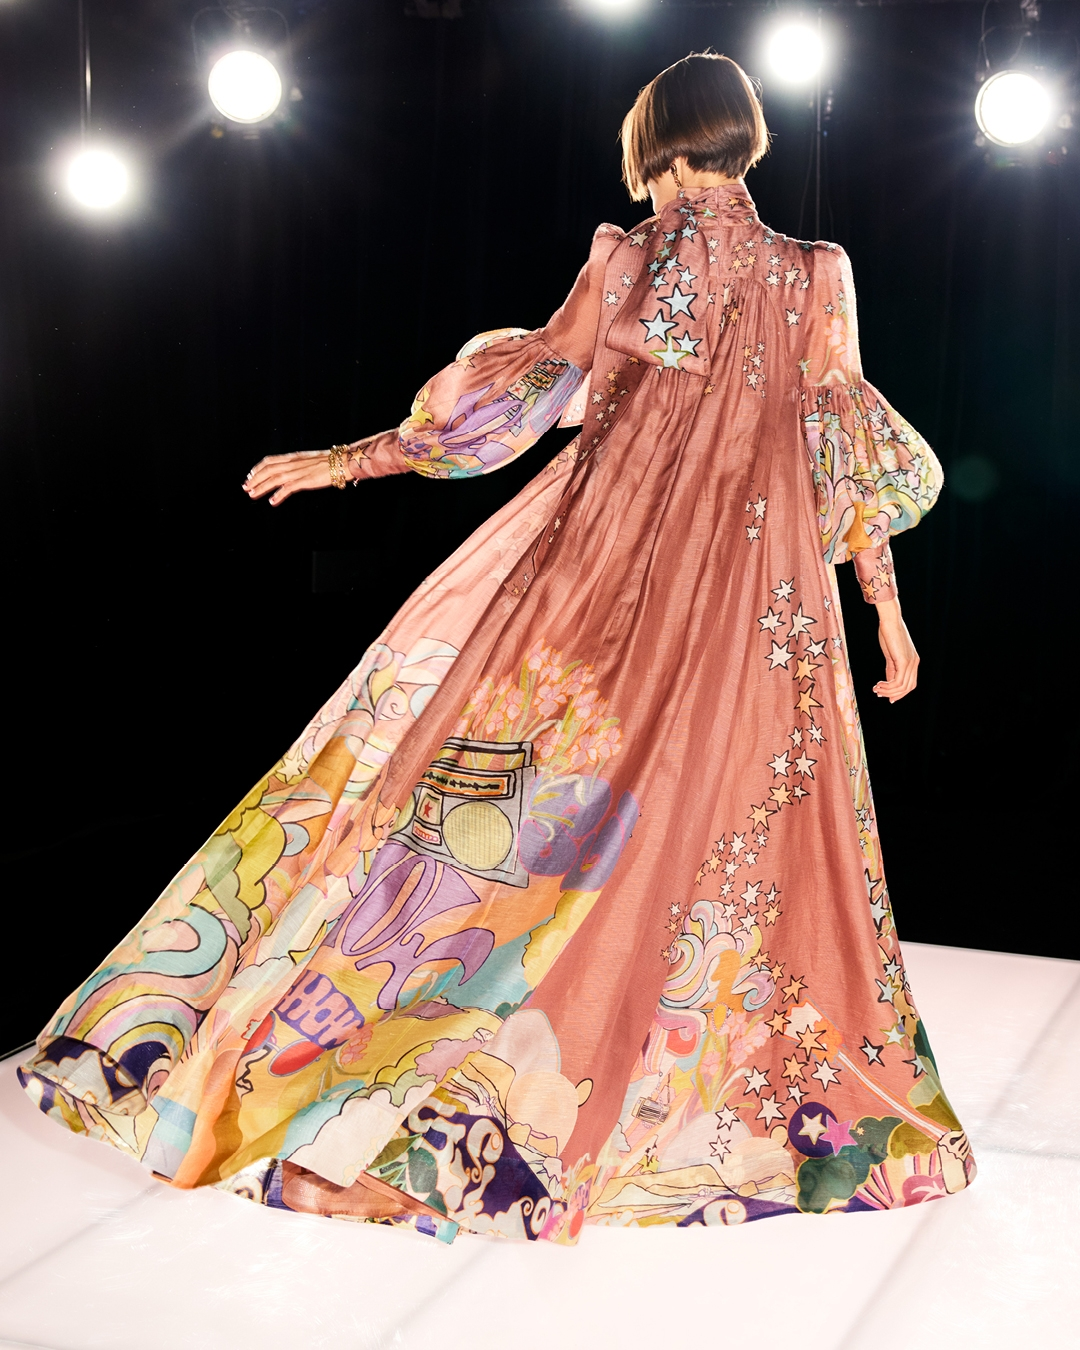 BACK OF HOUSE FALL READY TO WEAR 2021, IN CONCERT